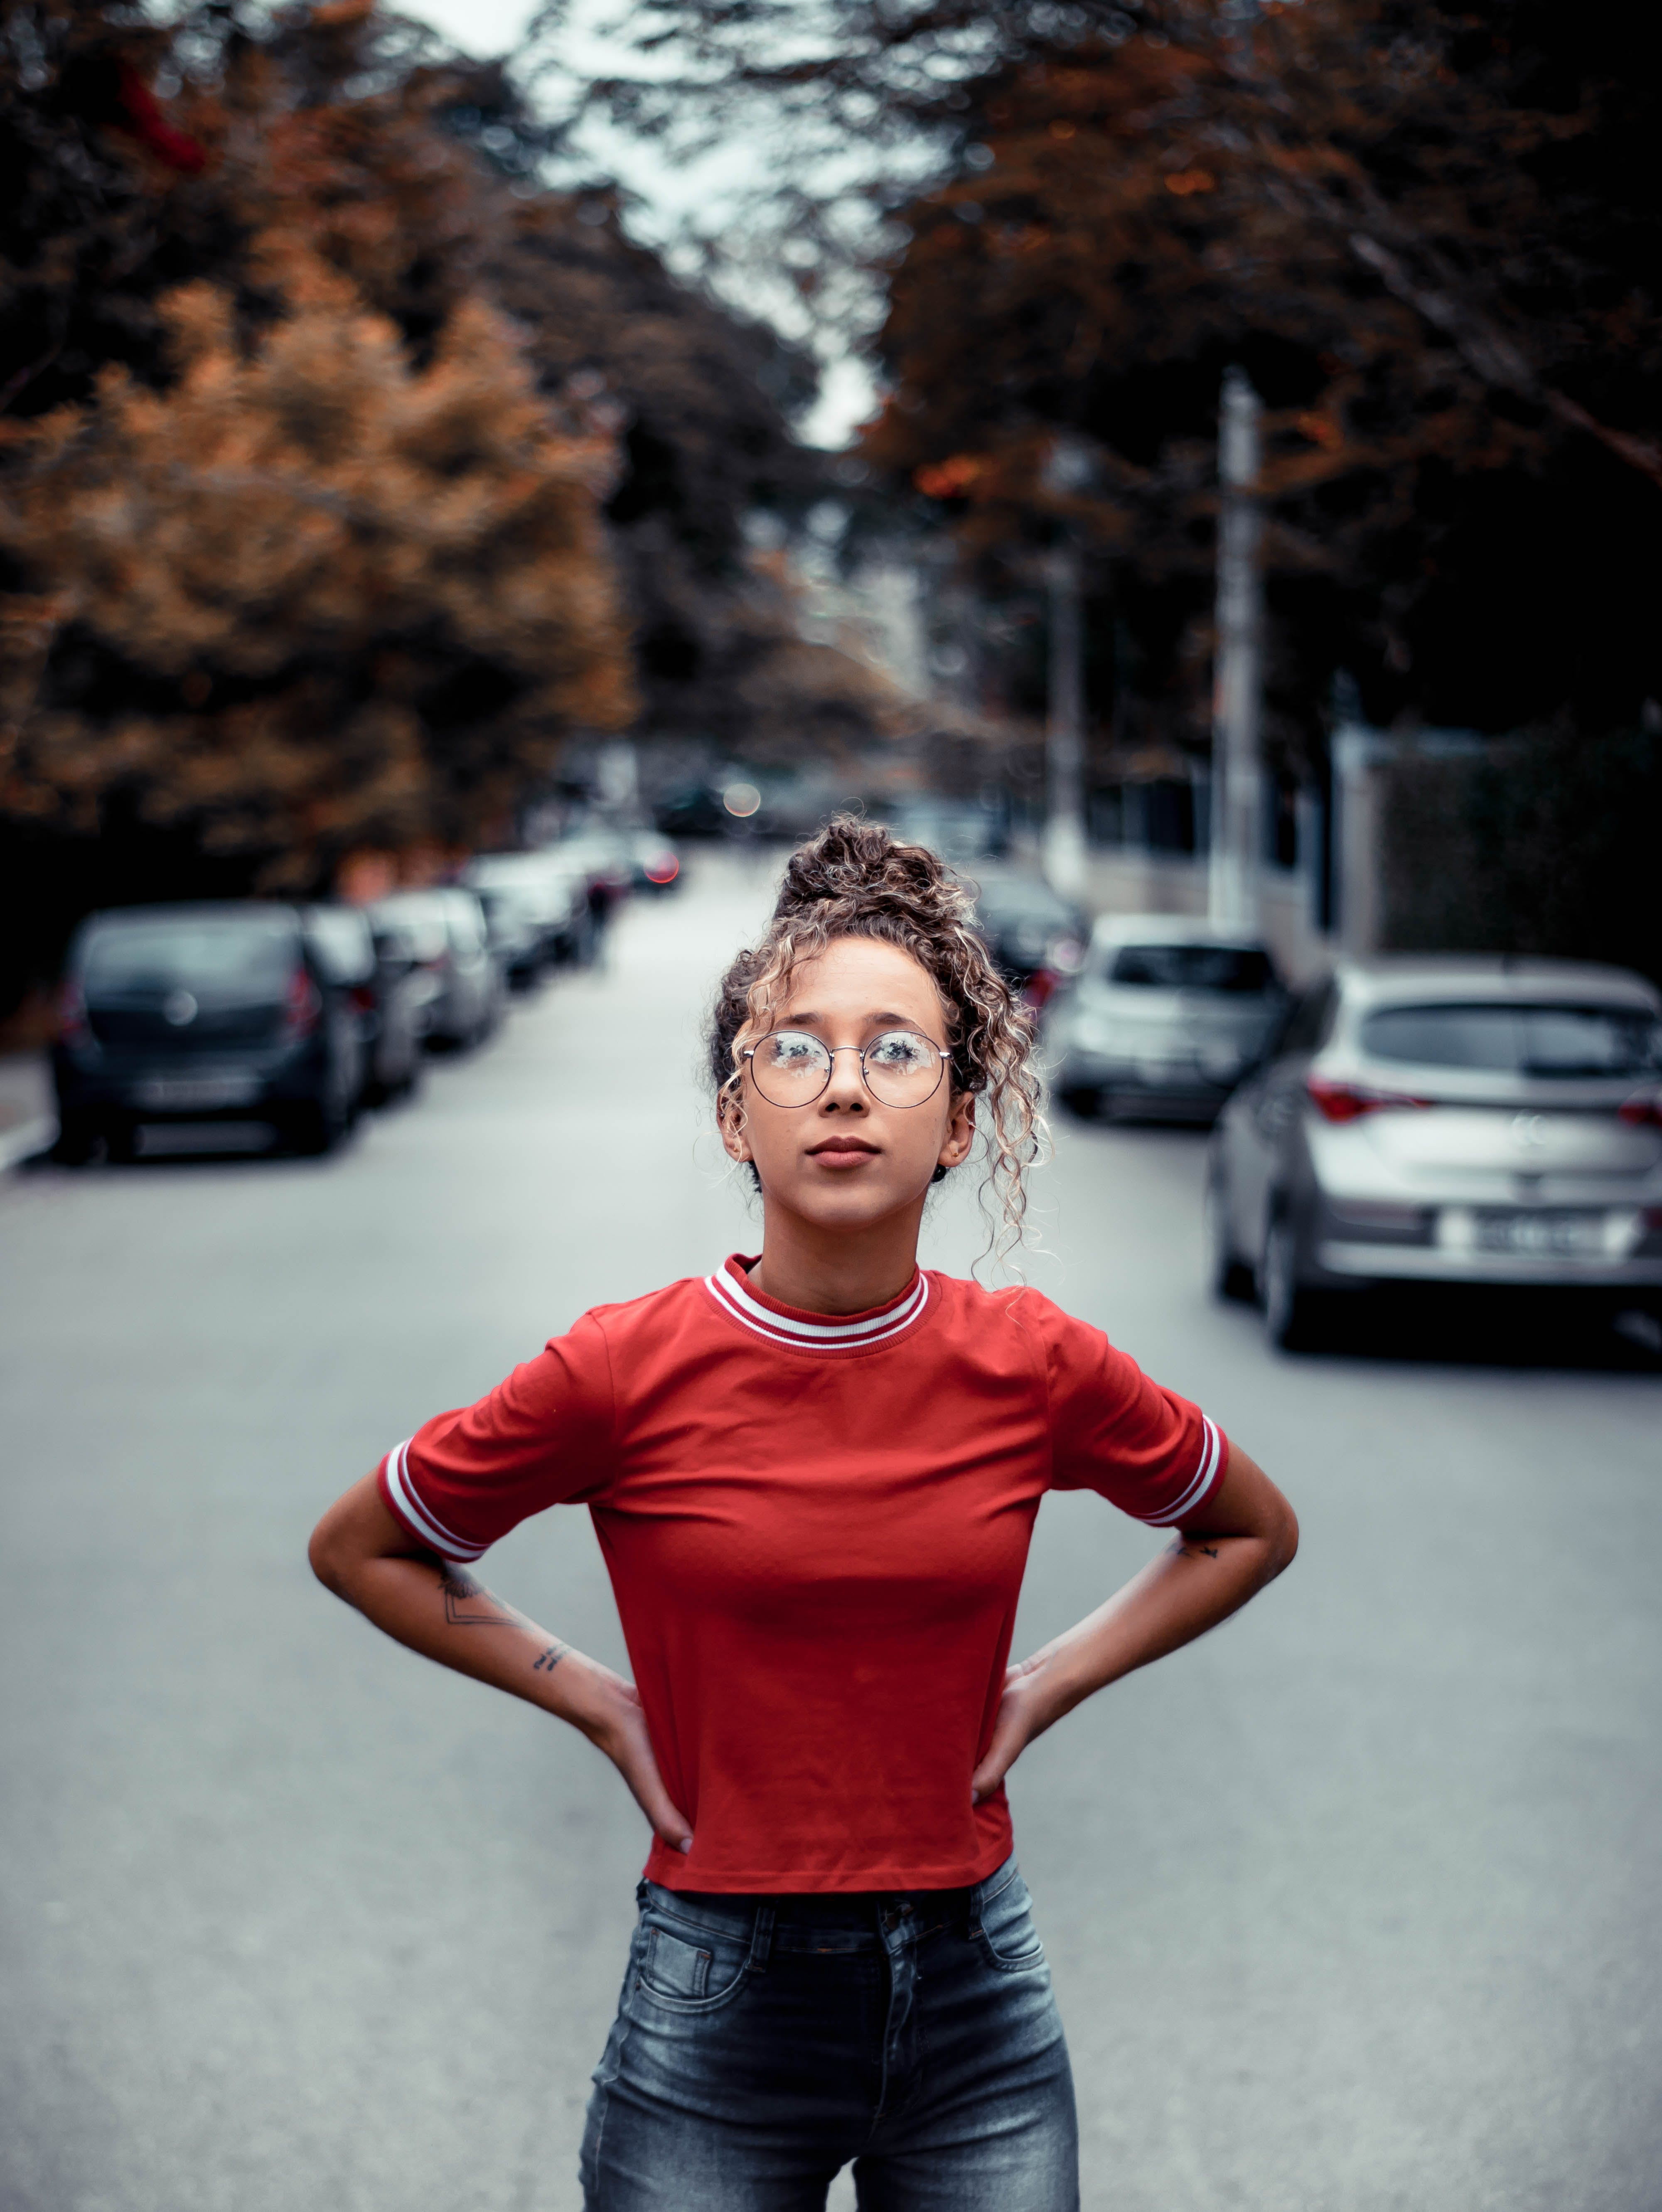 Shallow Focus Photo Of Woman In Red Crew Neck T-shirt